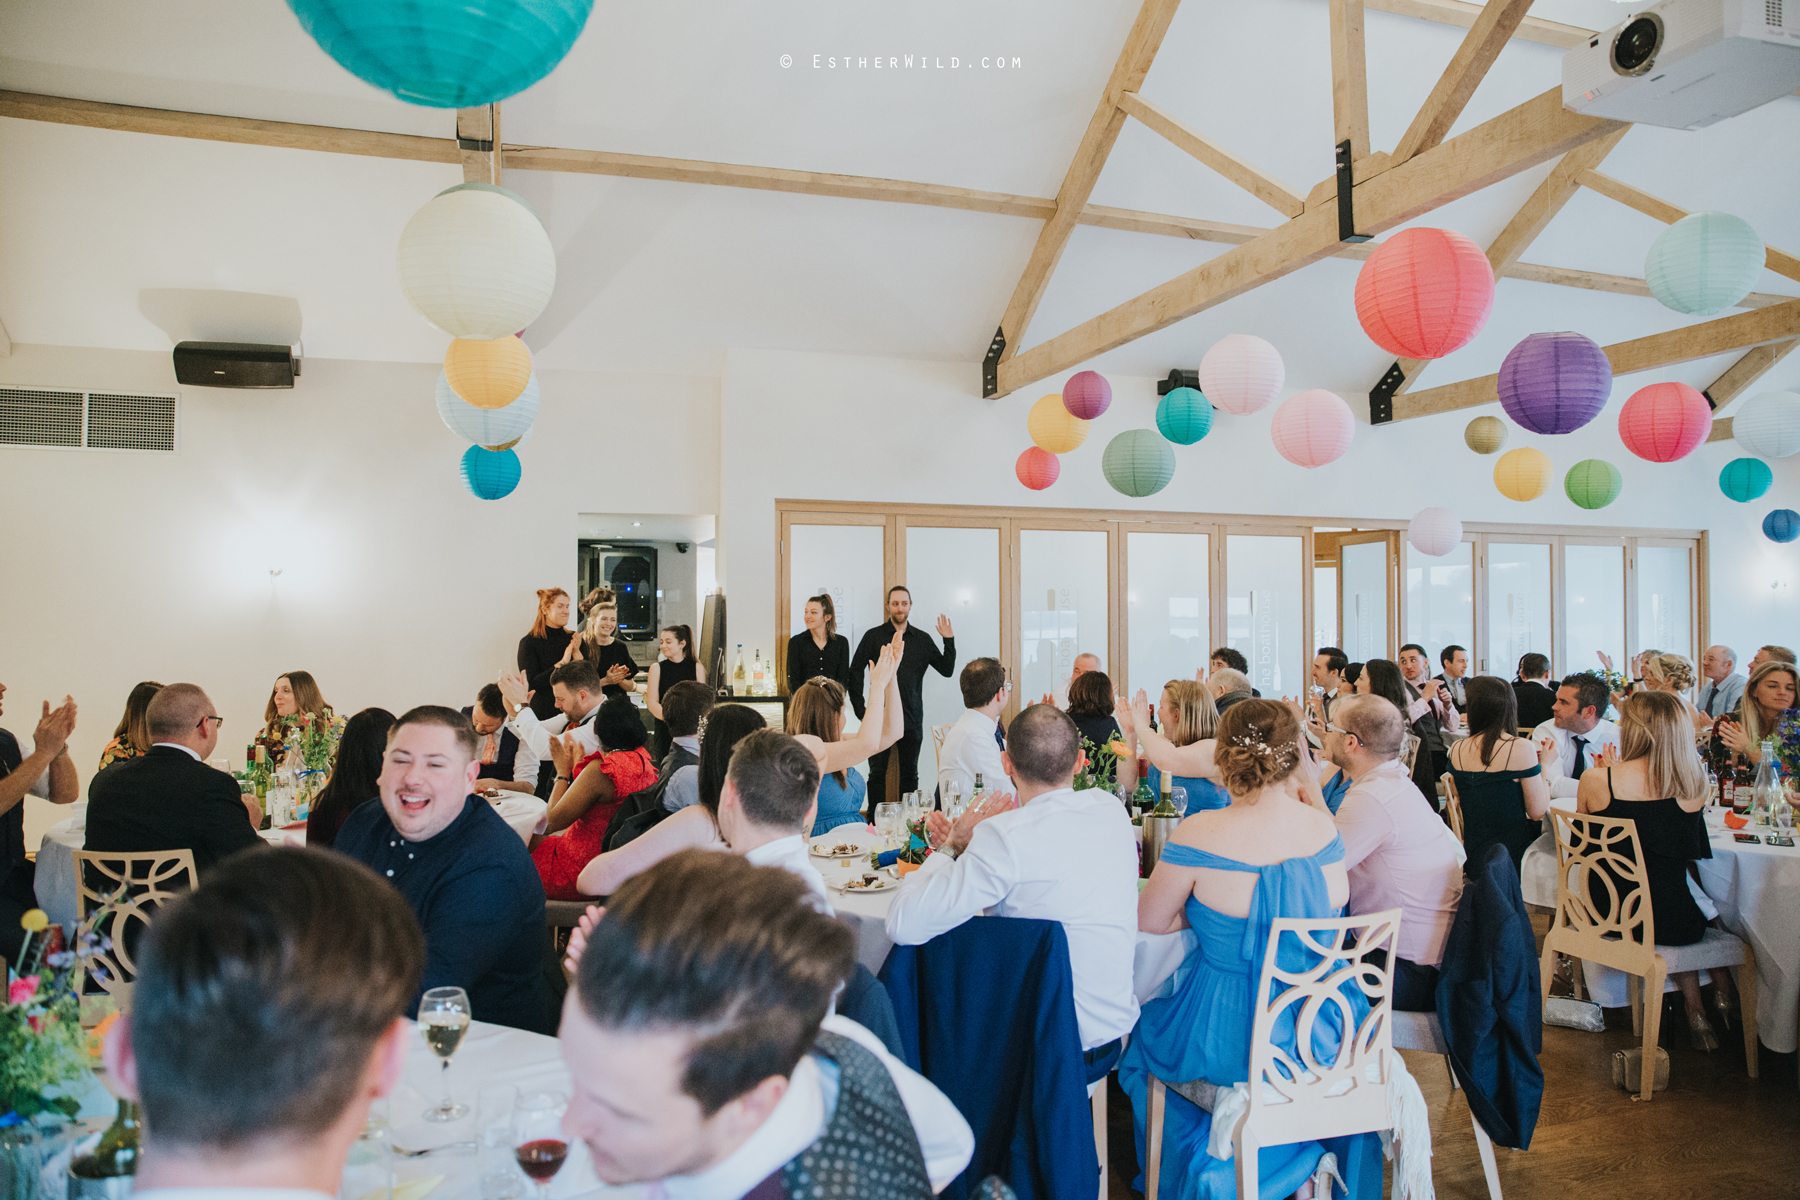 The_BoatHouse_Wedding_Venue_Ormesby_Norfolk_Broads_Boat_Wedding_Photography_Esther_Wild_Photographer_IMG_2266.jpg